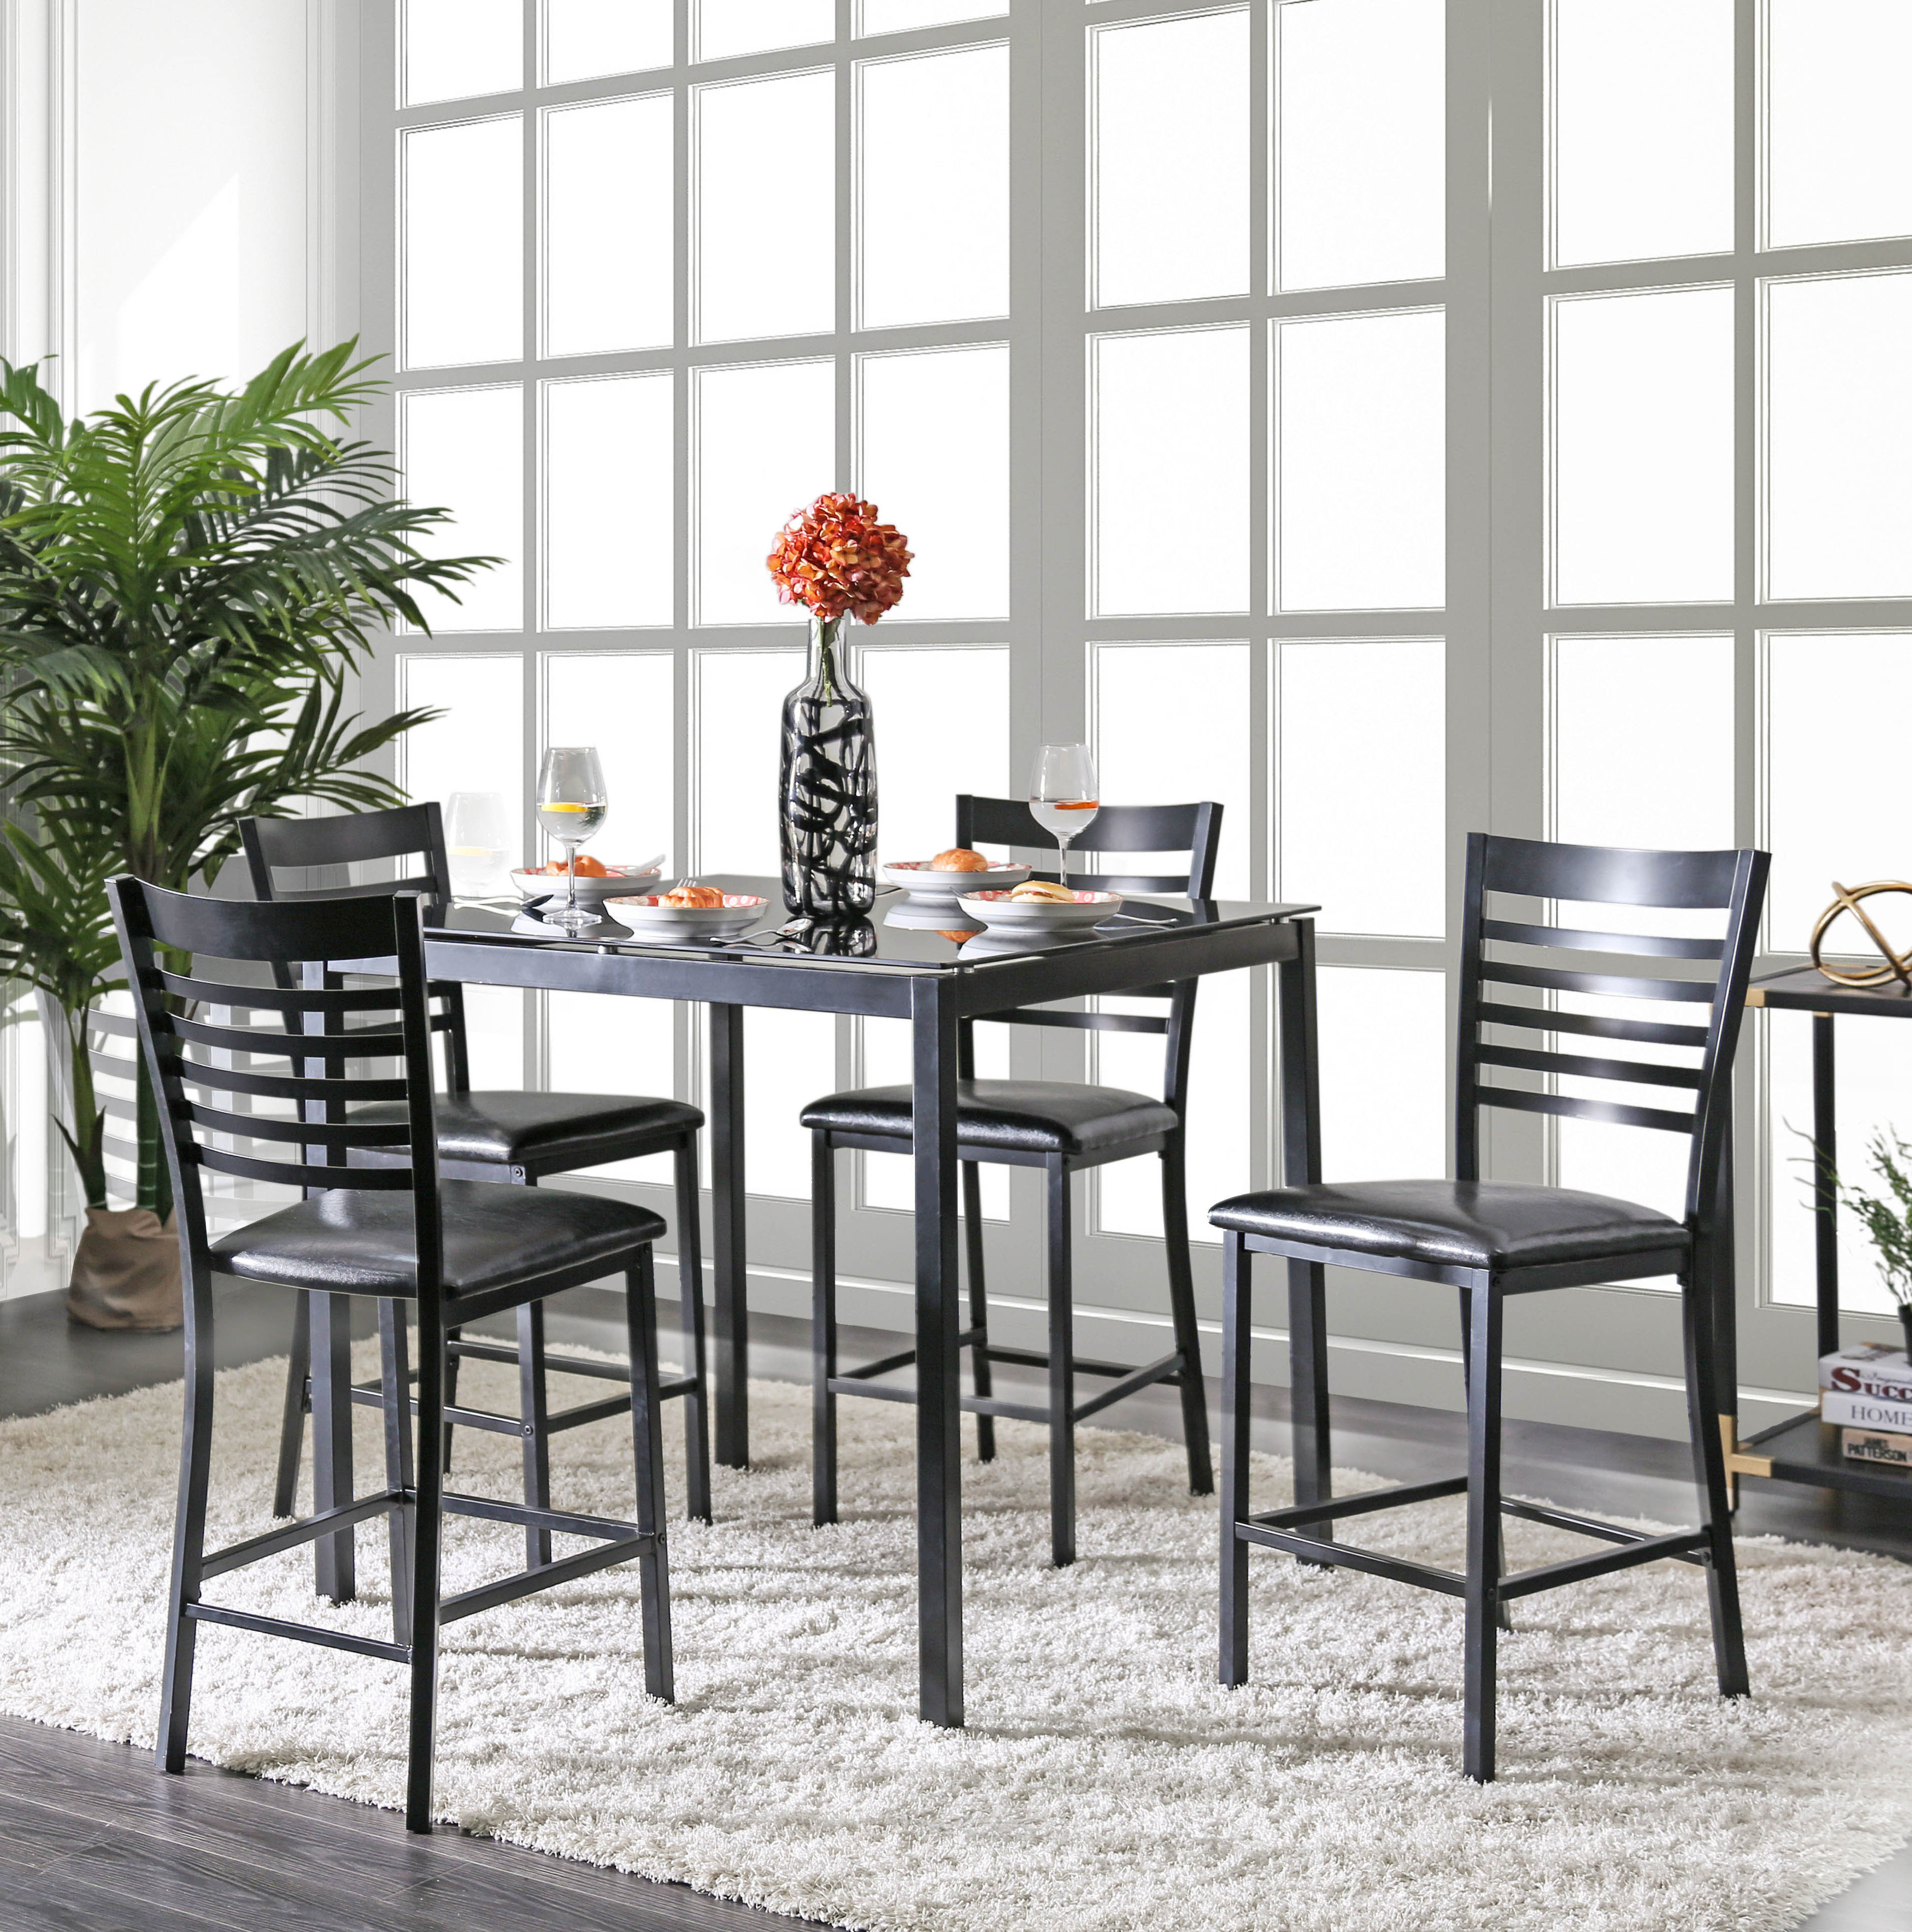 Bhamidipati Pub 5 Piece Dining Set Pertaining To Latest Lightle 5 Piece Breakfast Nook Dining Sets (Image 2 of 20)